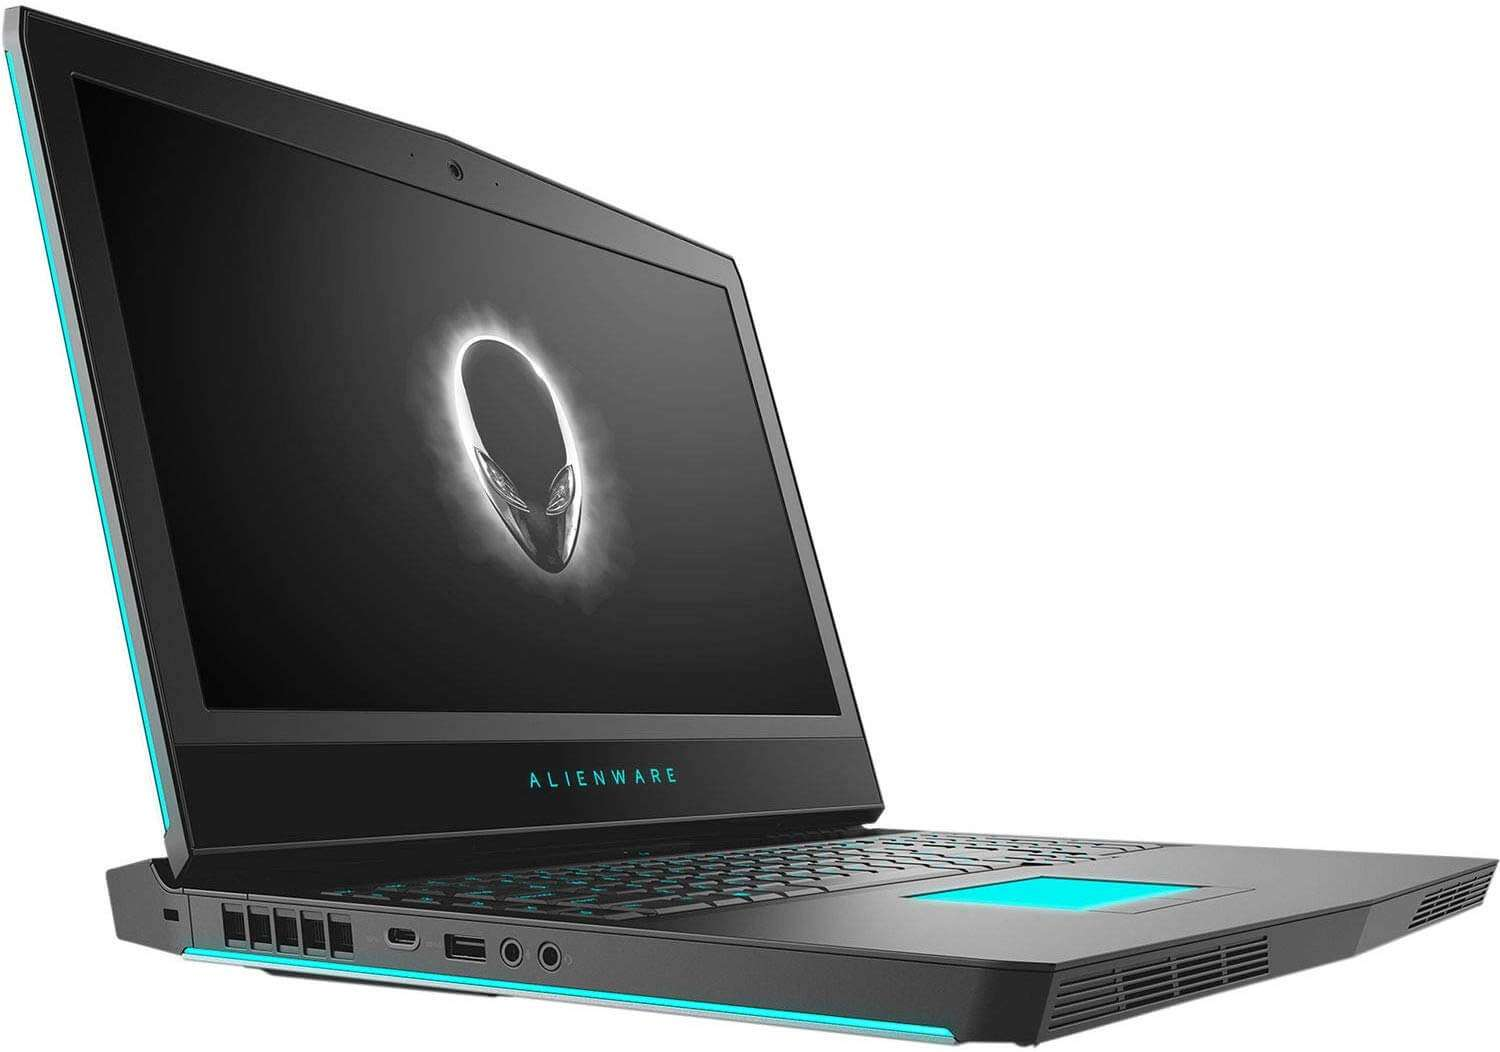 DELL Alienware 17 R5 Gaming Laptop 17.3-Inch Display, Intel i7-8750H Processor/16GB RAM/1TB HDD+128SSD/8GB GeForce GTX 1070 Black